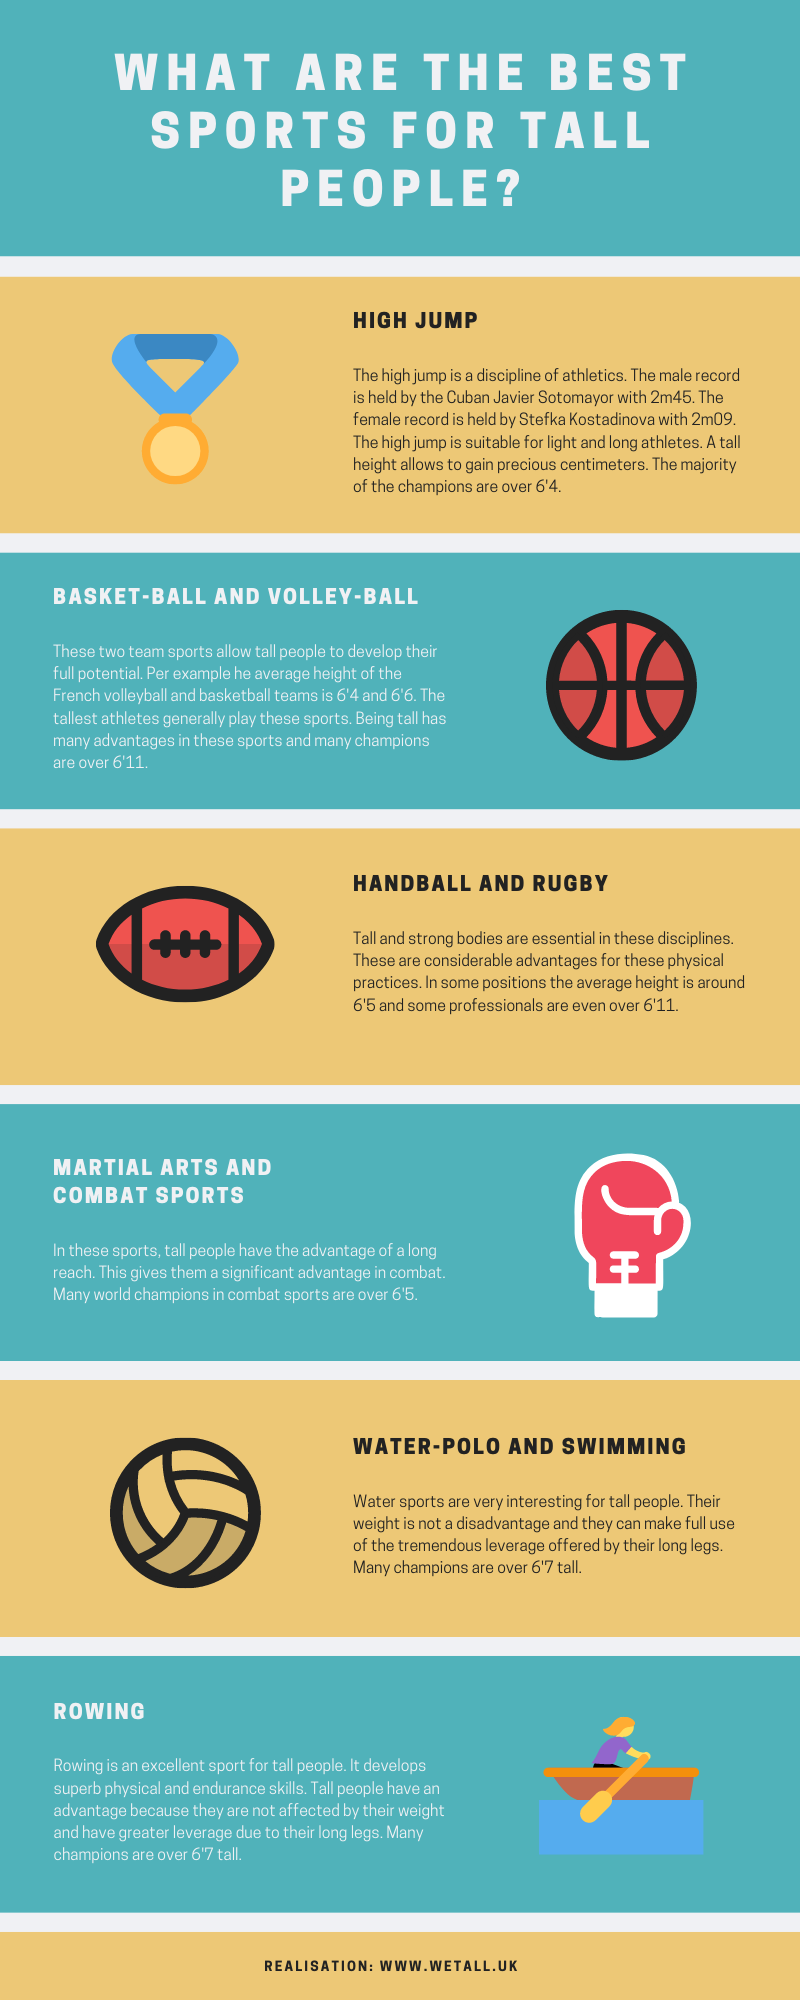 The best sports for tall people